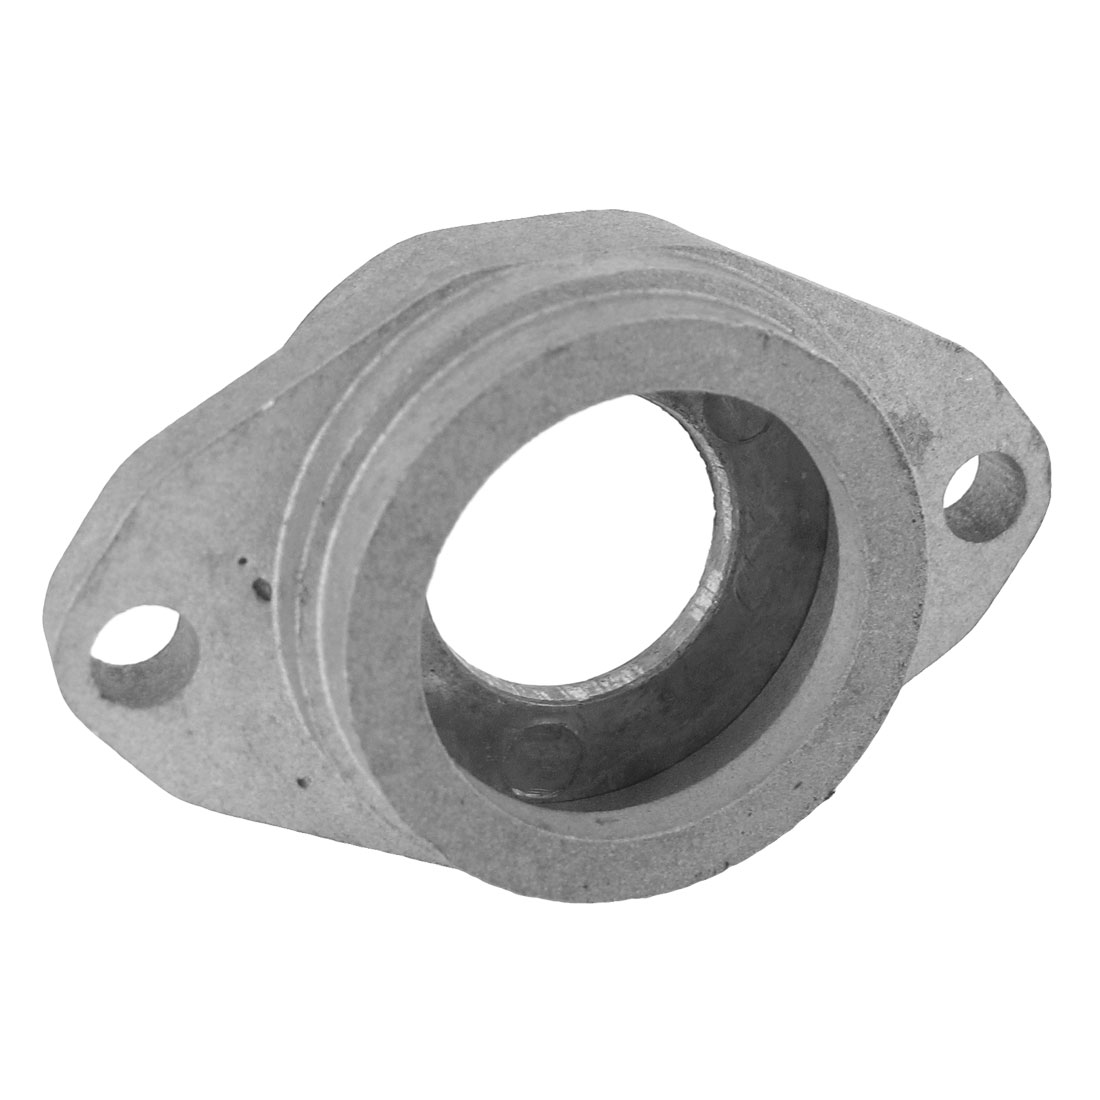 Aluminum 5.8mm Mount Angle Grinder Bearing Seat for Hitachi 4SB2